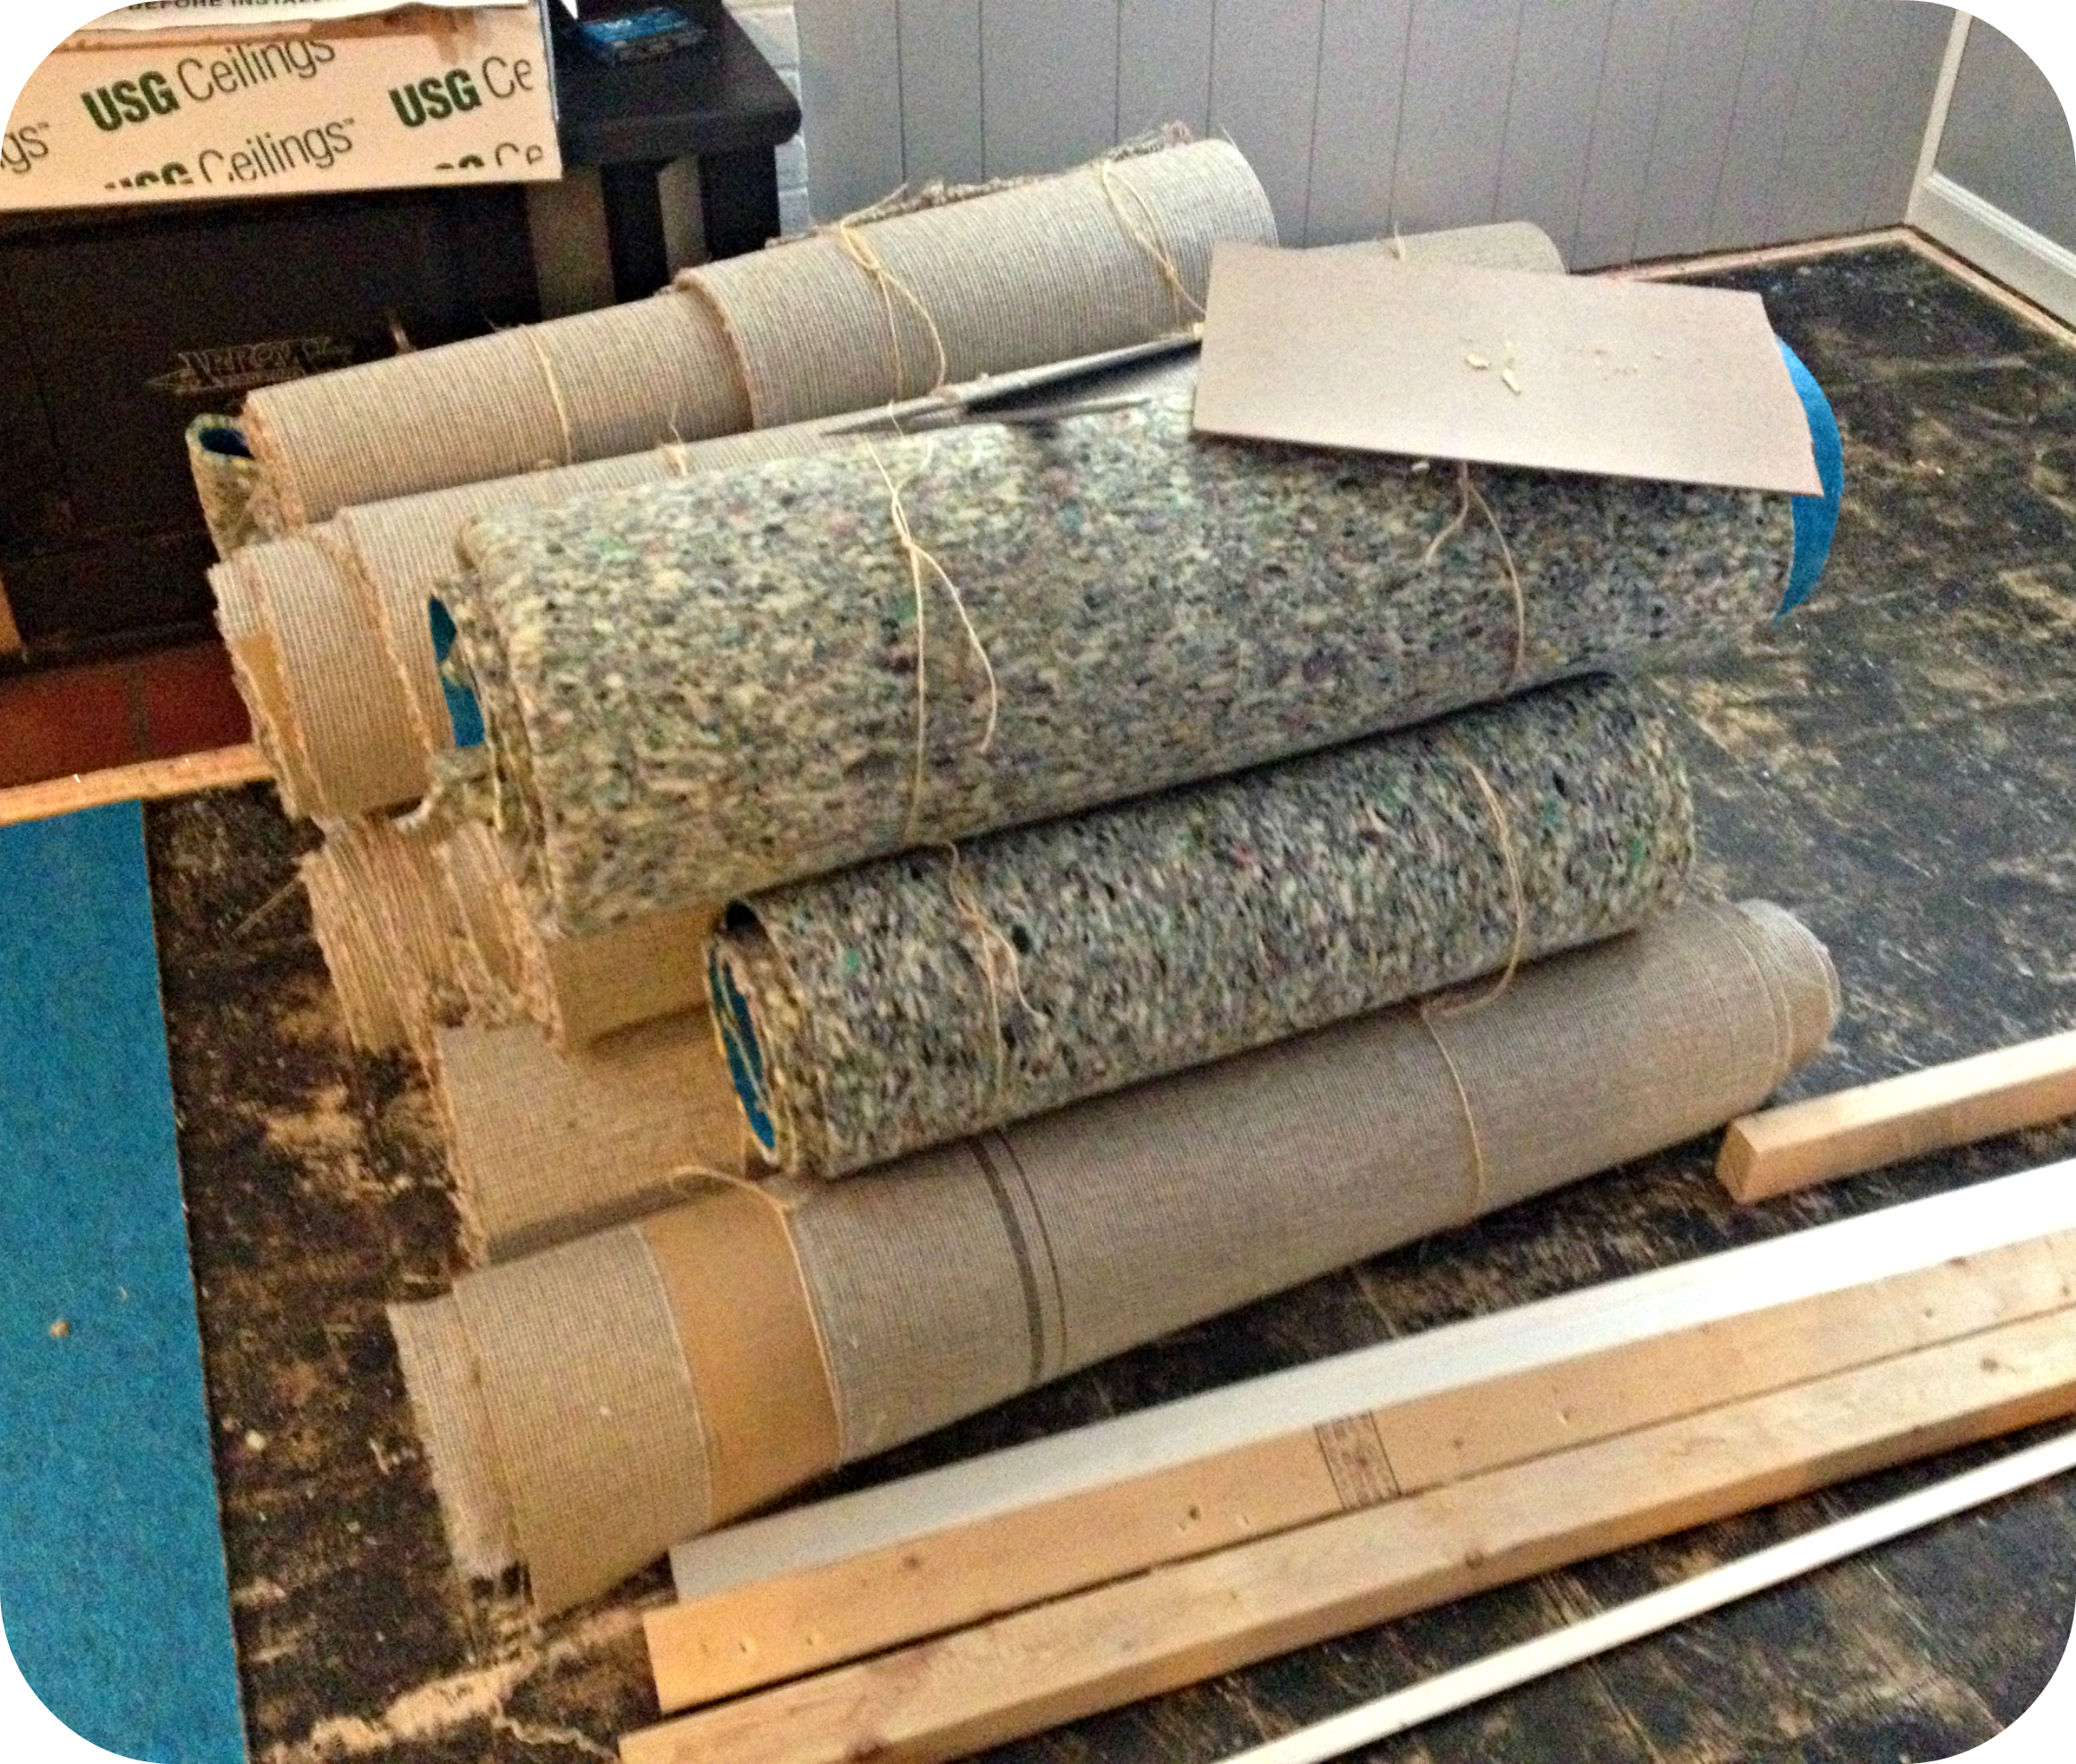 A great example ofhow to roll up old carpet.